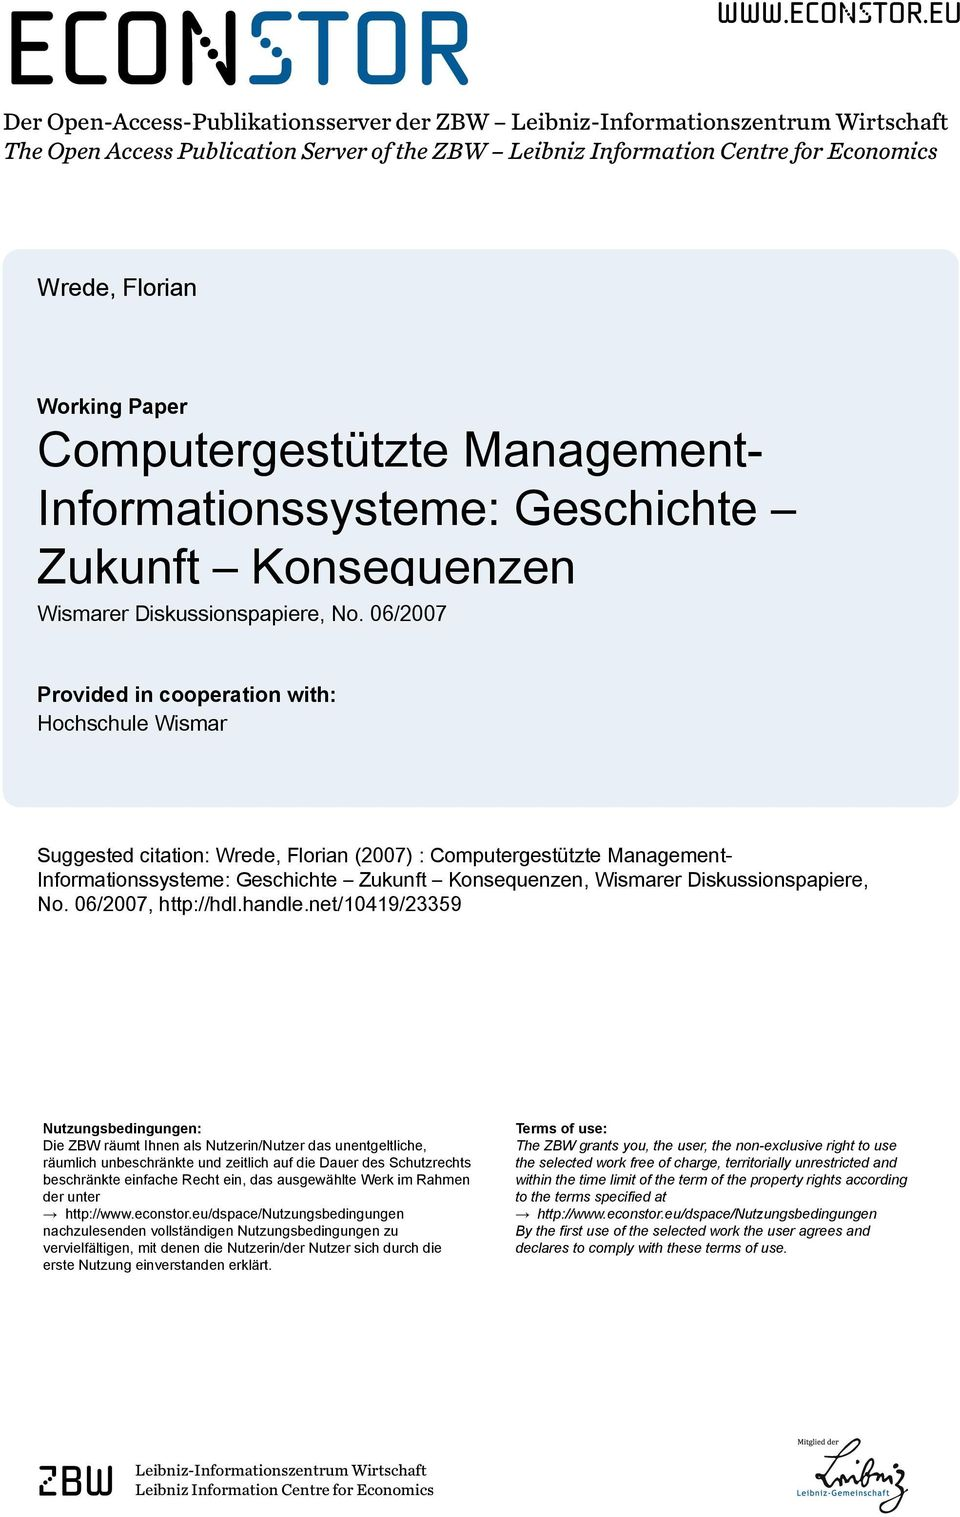 eu Der Open-Access-Publikationsserver der ZBW Leibniz-Informationszentrum Wirtschaft The Open Access Publication Server of the ZBW Leibniz Information Centre for Economics Wrede, Florian Working